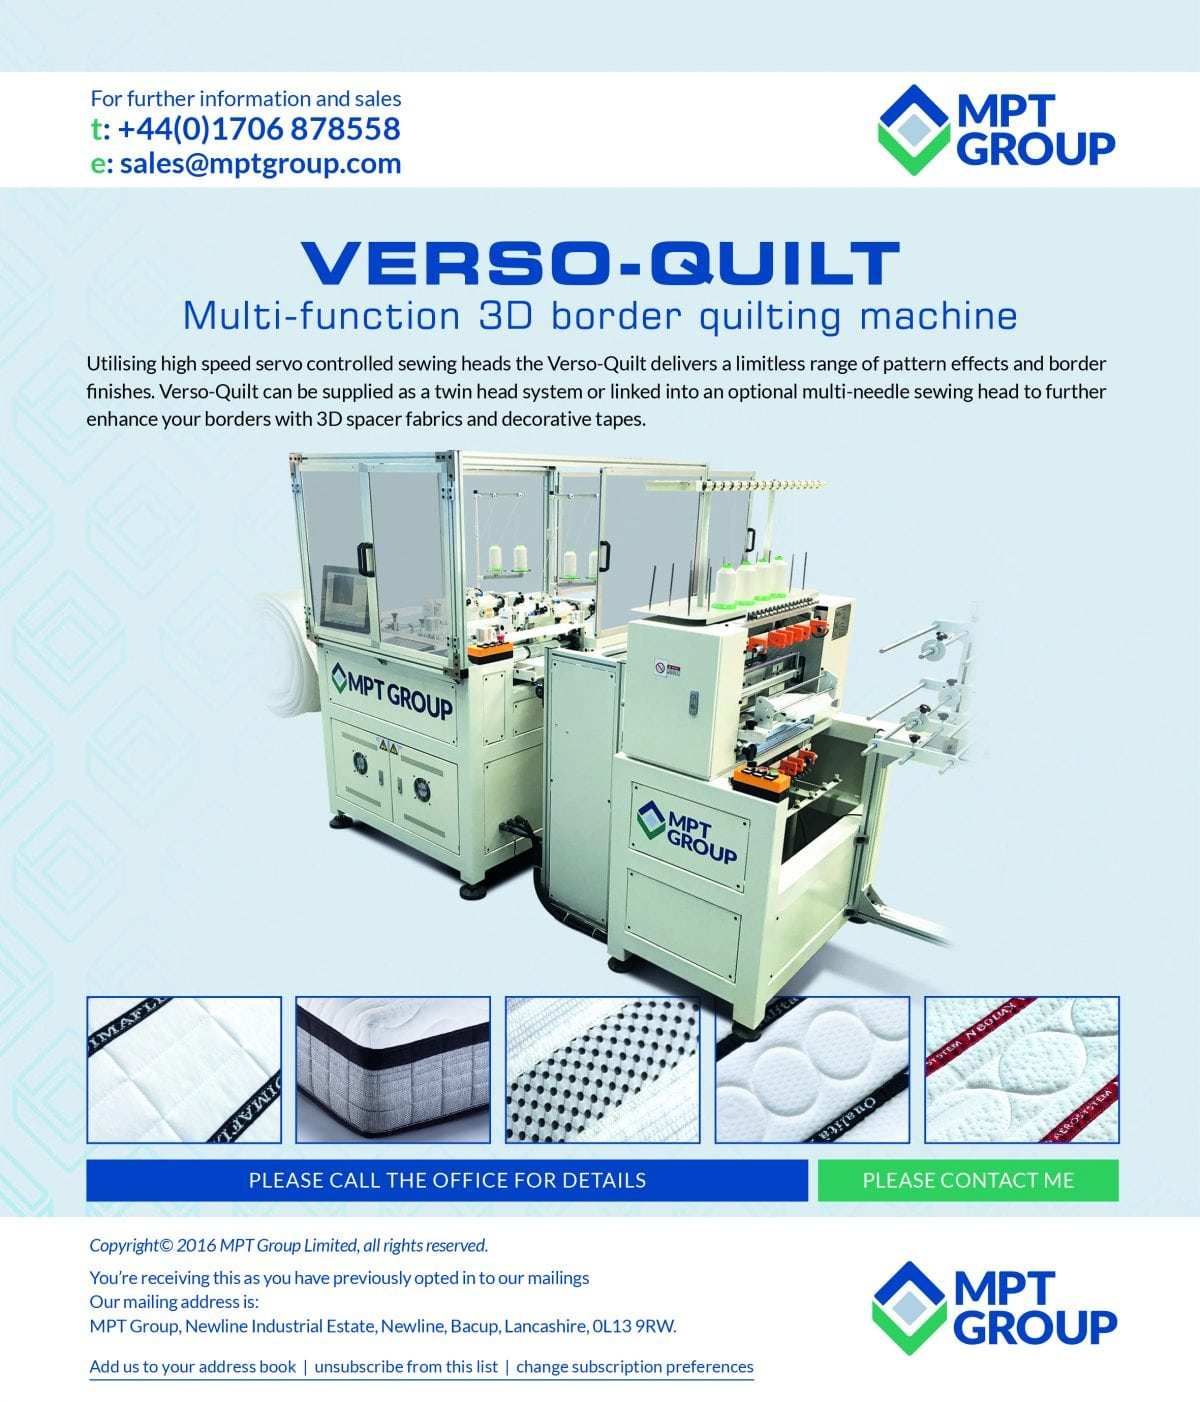 New Verso Quilt Multi-Function 3D border quilting machine